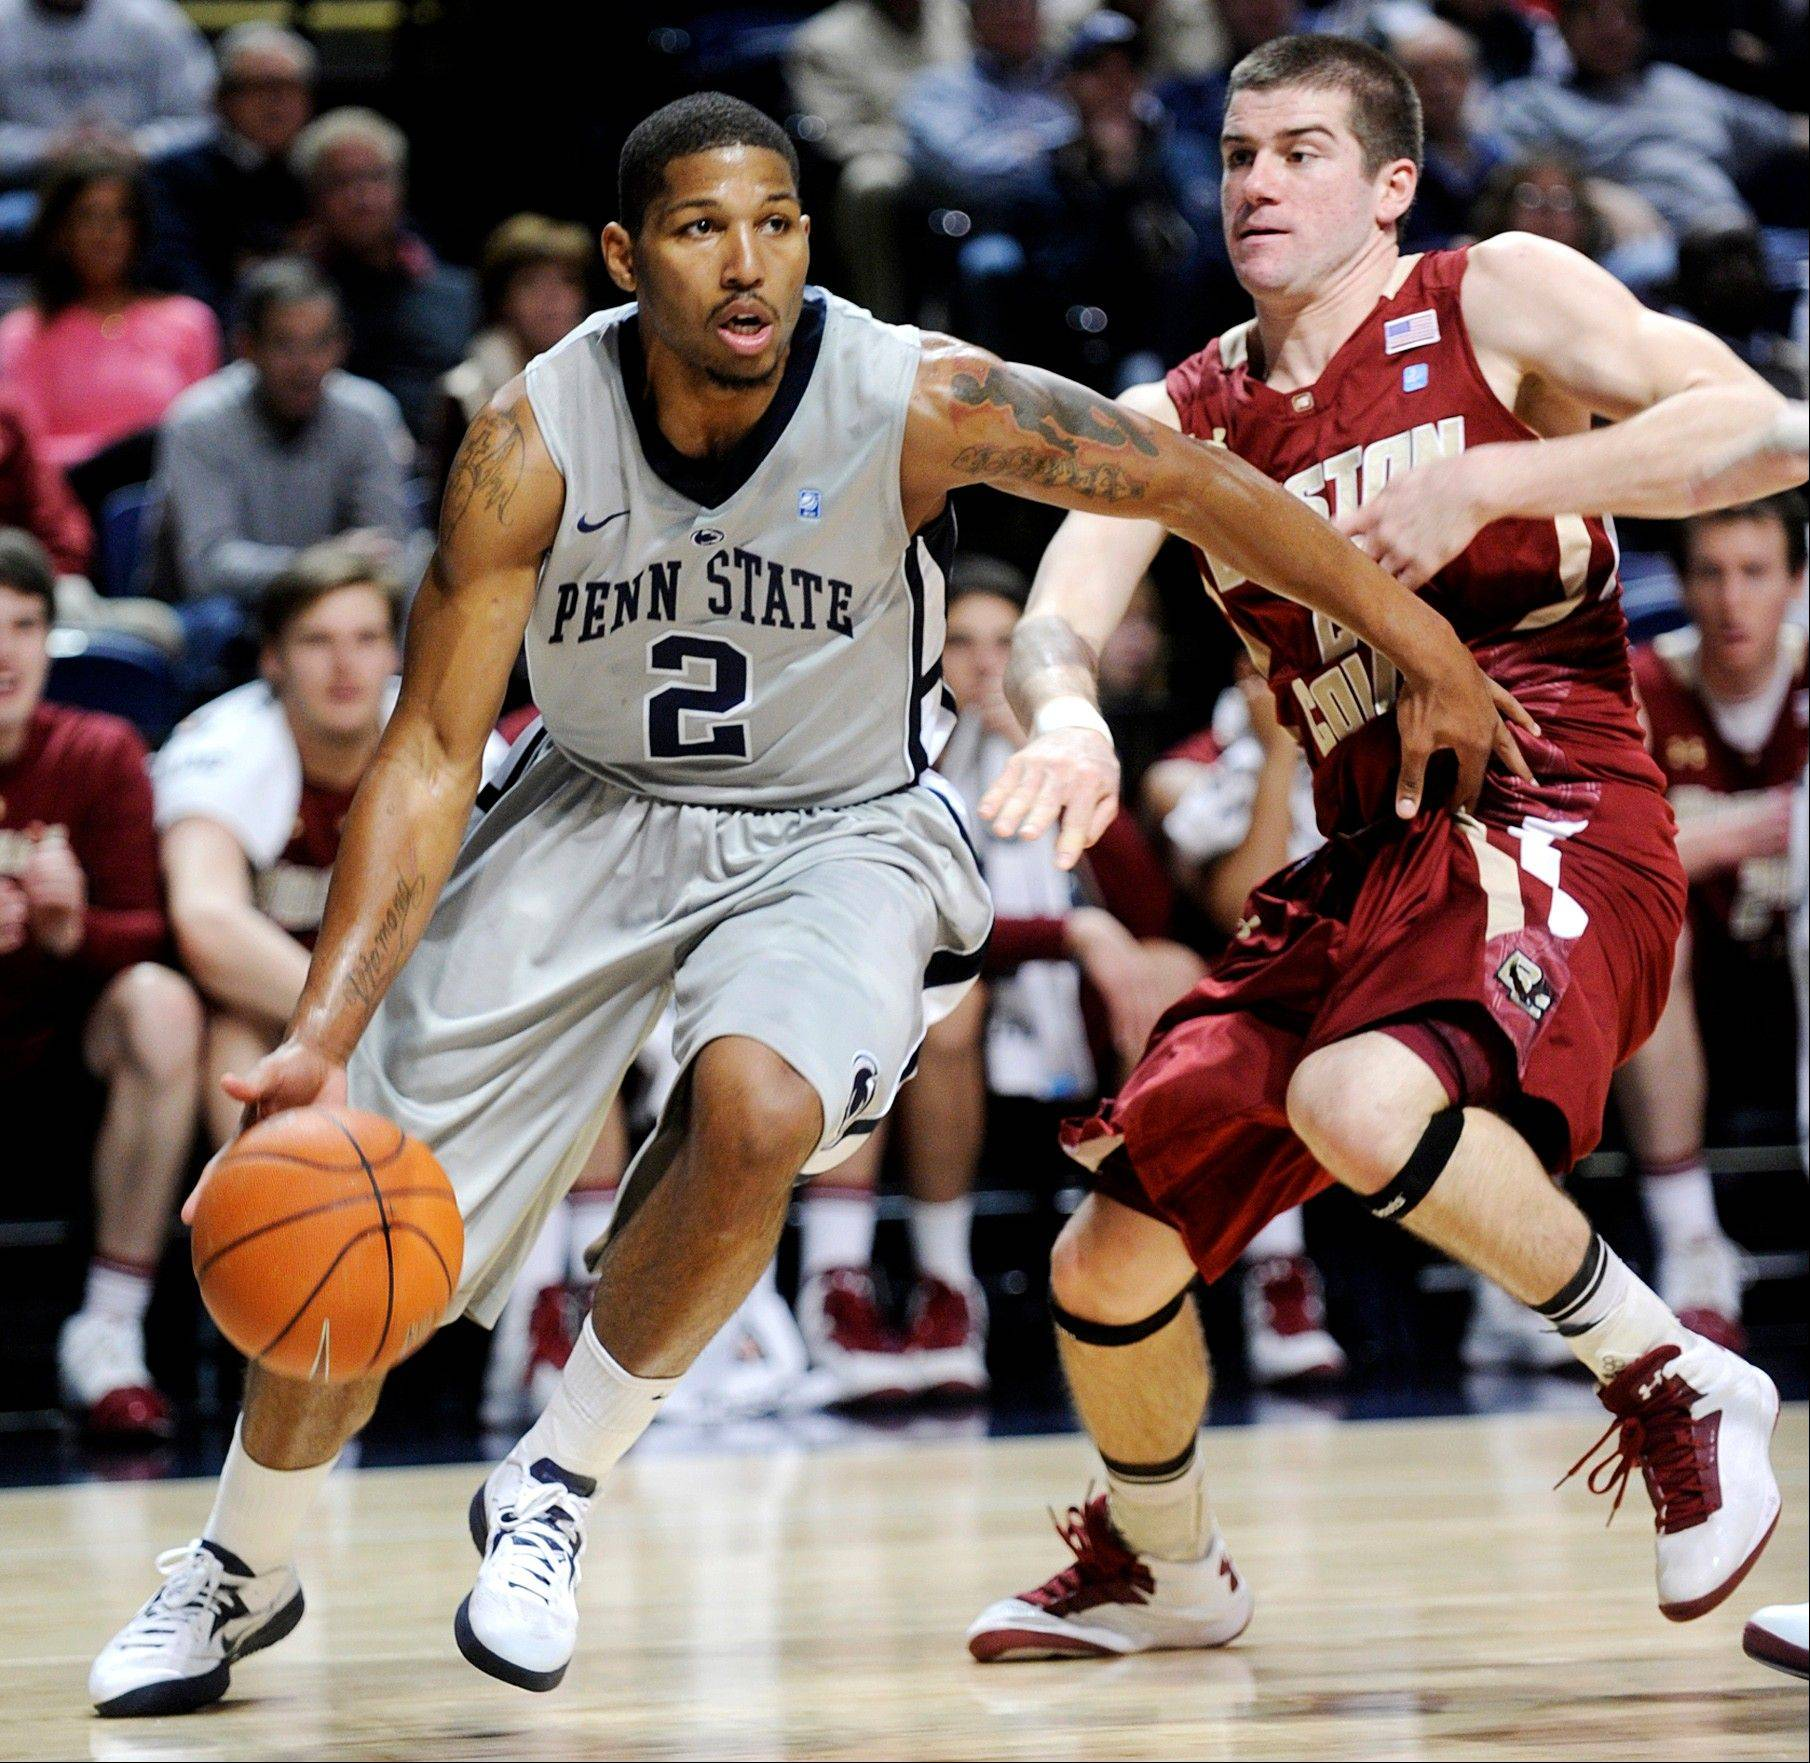 Penn State�s D.J. Newbill dribbles around Boston College�s Joe Rahon Wednesday in State College, Pa.